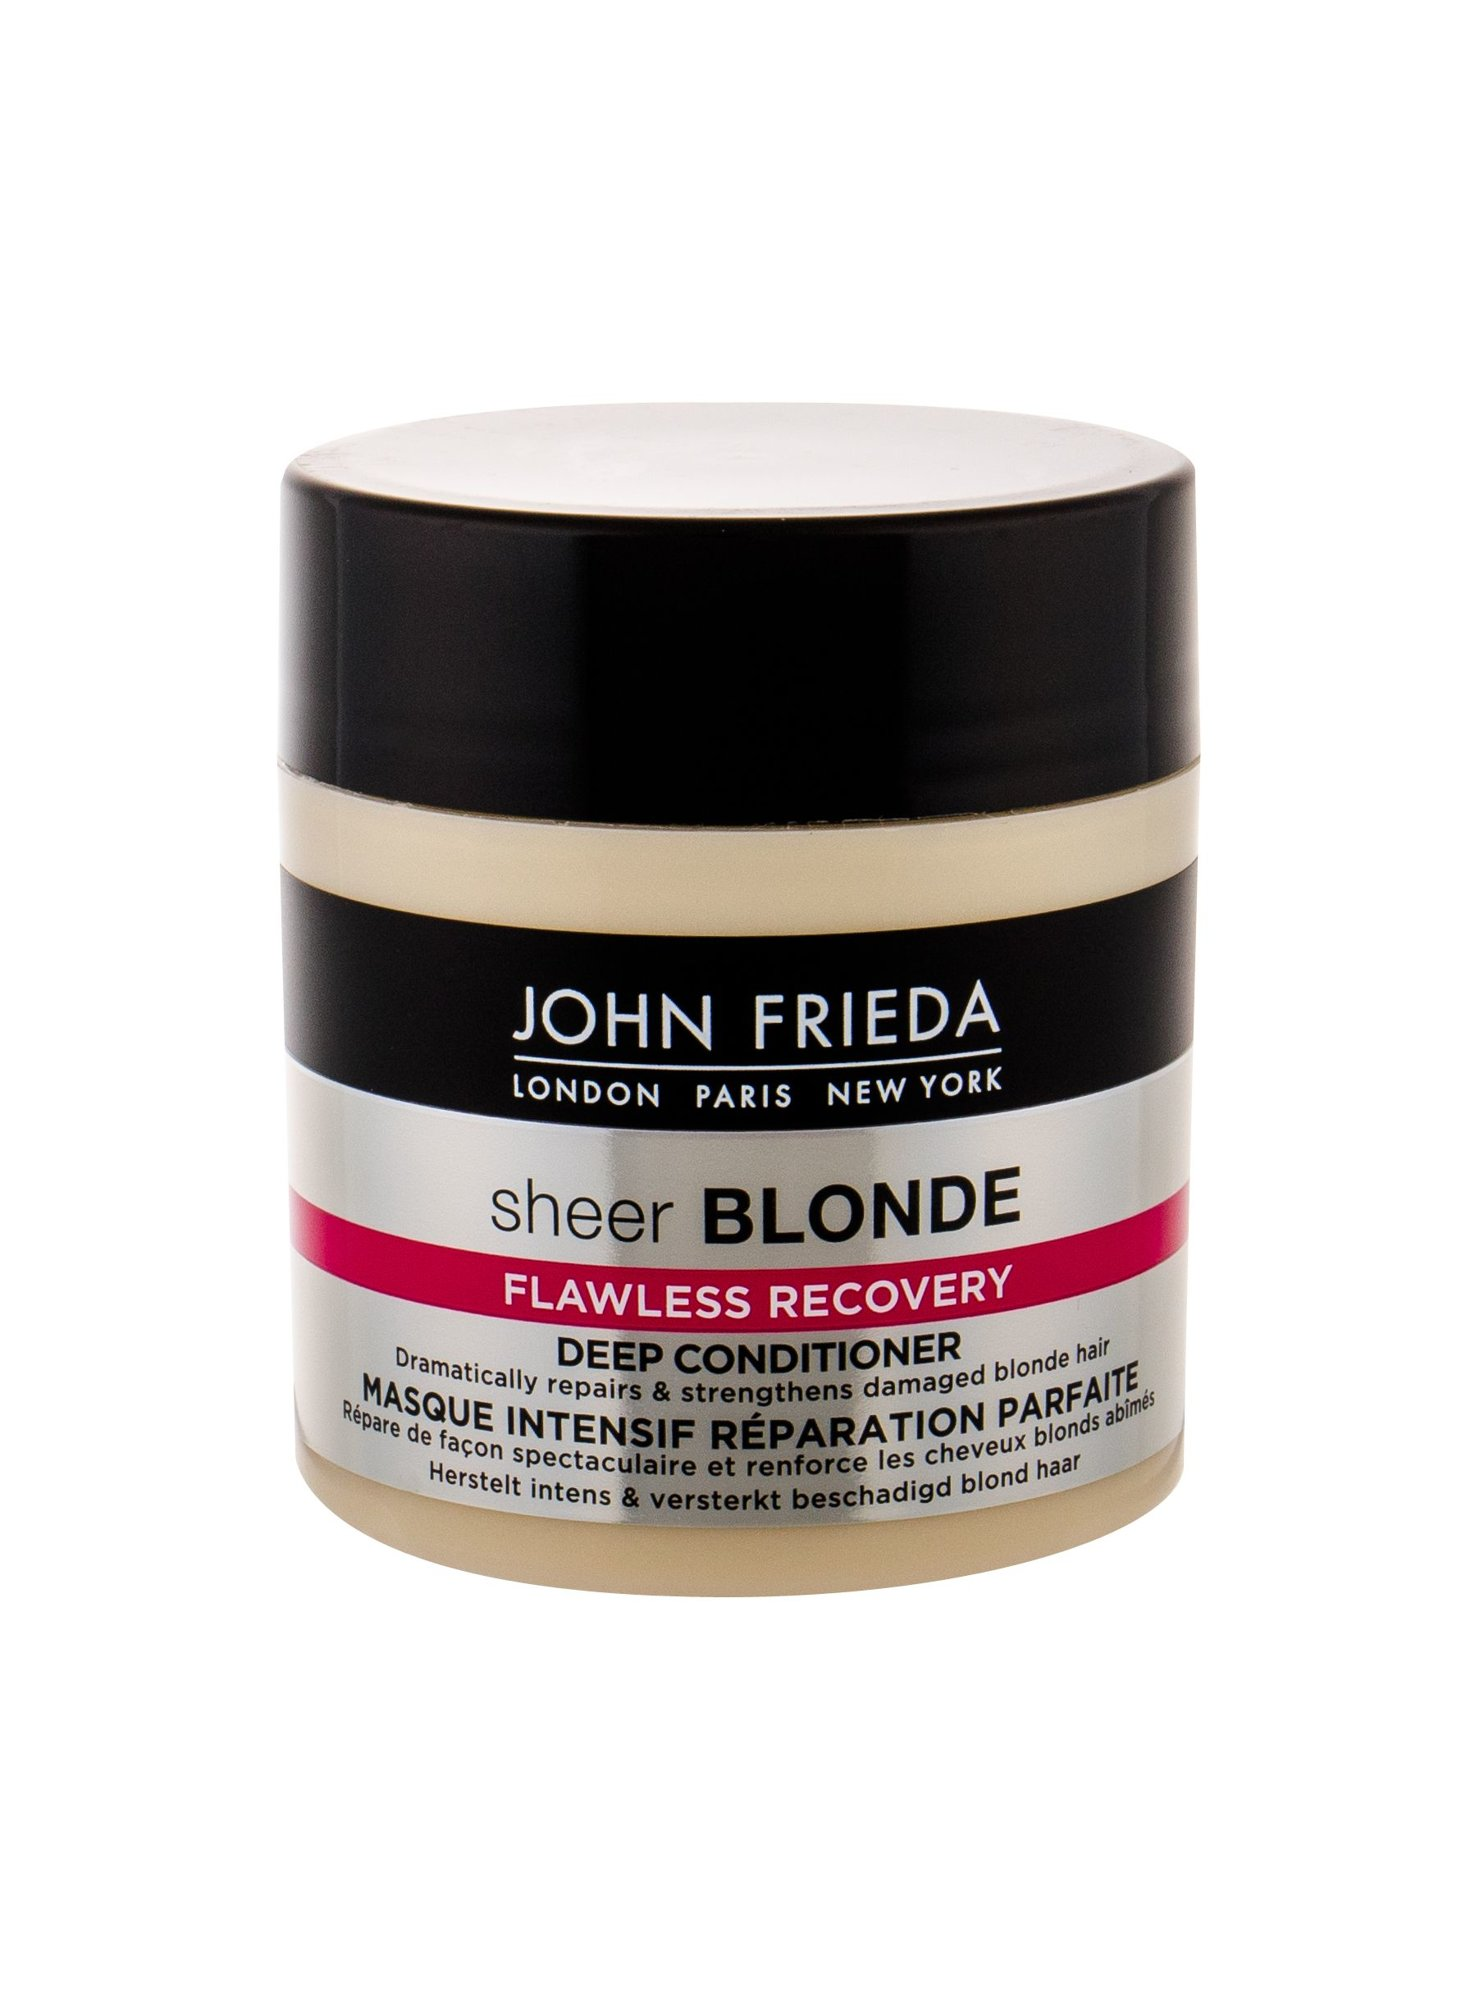 John Frieda Sheer Blonde Conditioner 150ml  Flawless Recovery